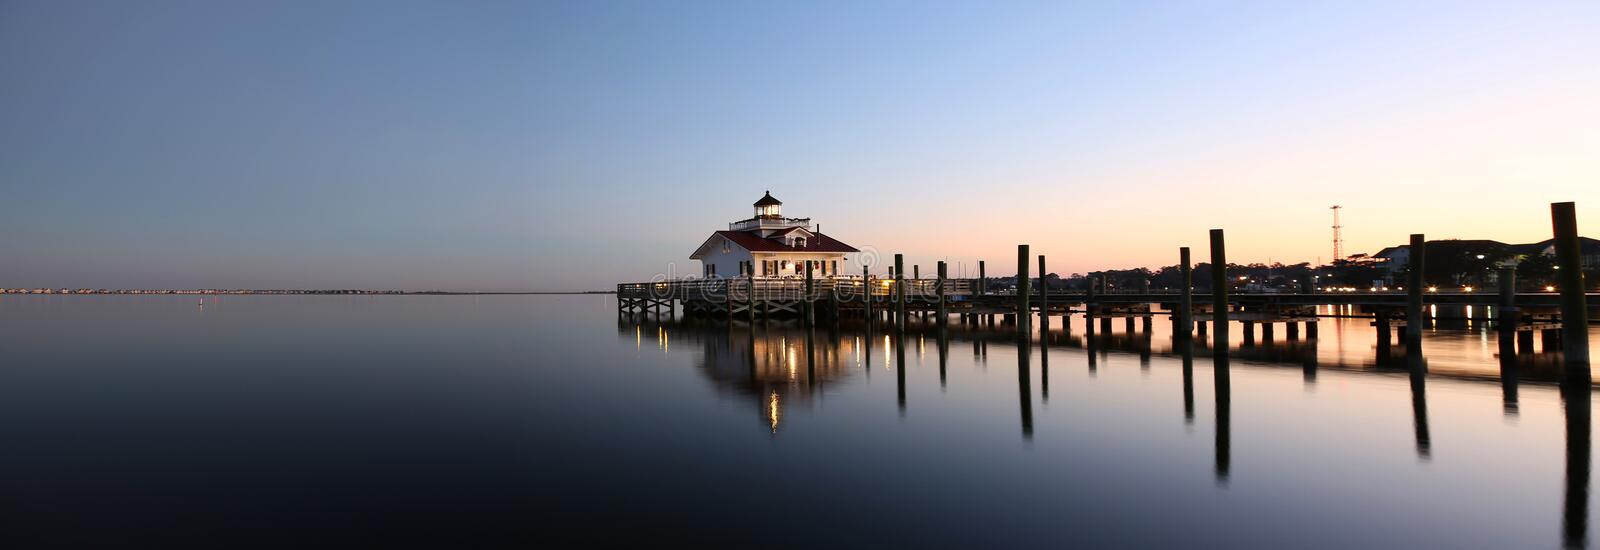 Lighthouse reflected in water at dusk. Roanoke Marshes Lighthouse Manteo NC Outer Banks North Carolina dock in Albemarle Sound royalty free stock images